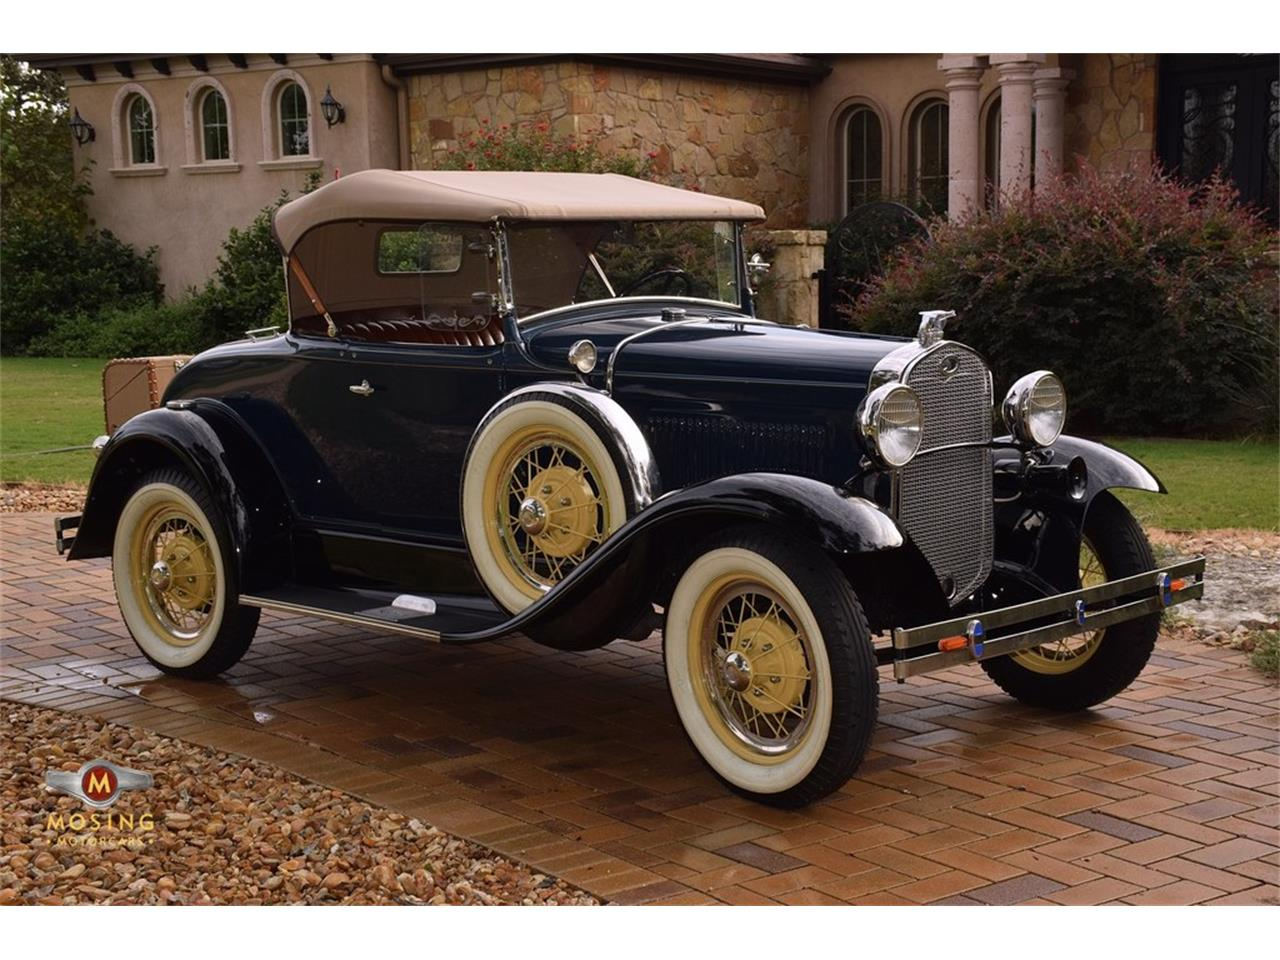 Large picture of 31 model a mlhf